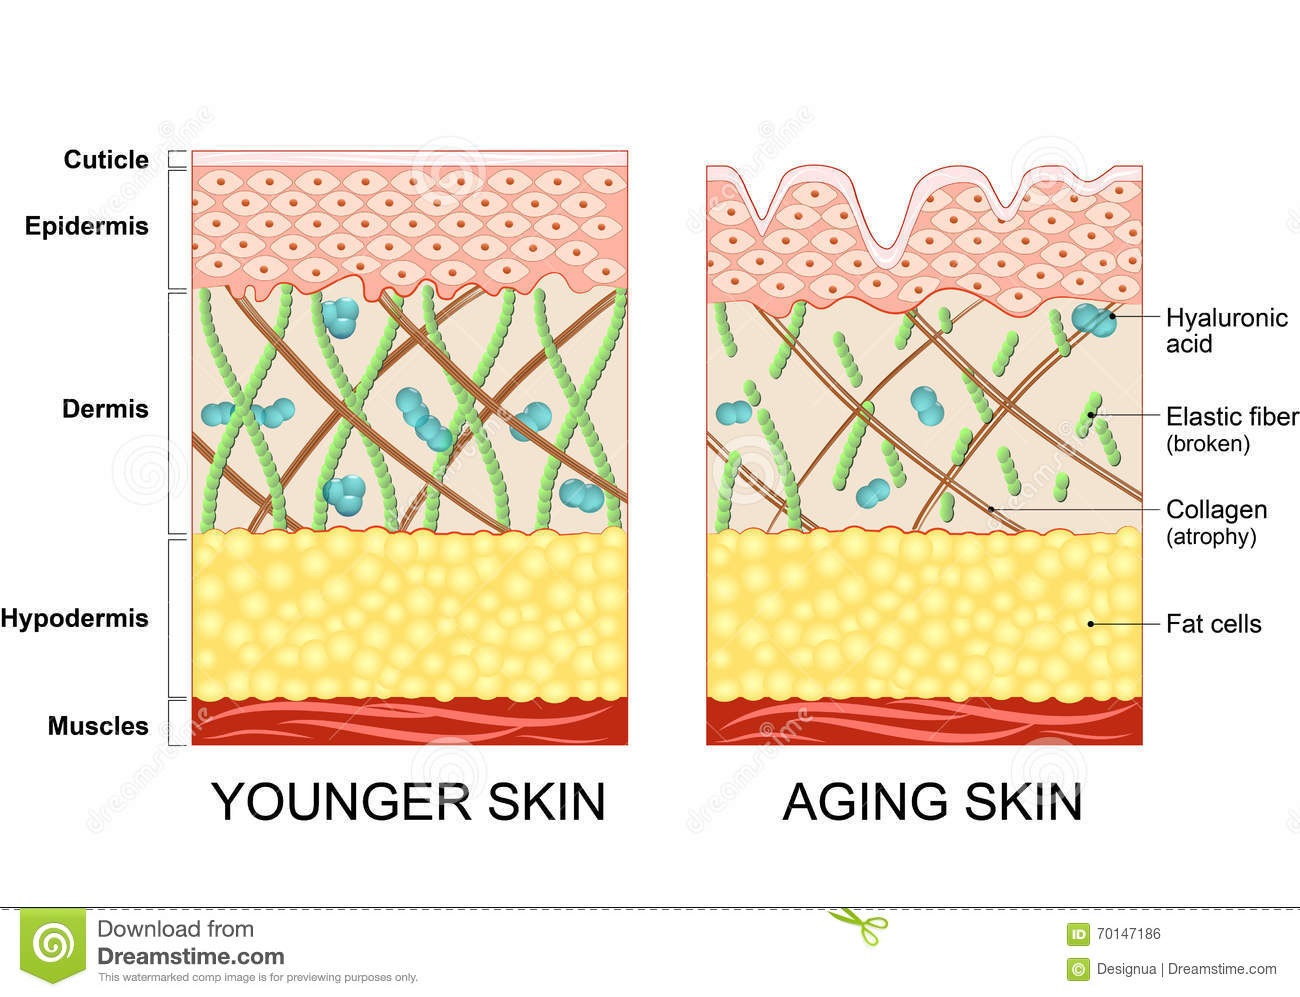 The human anatomy and aging